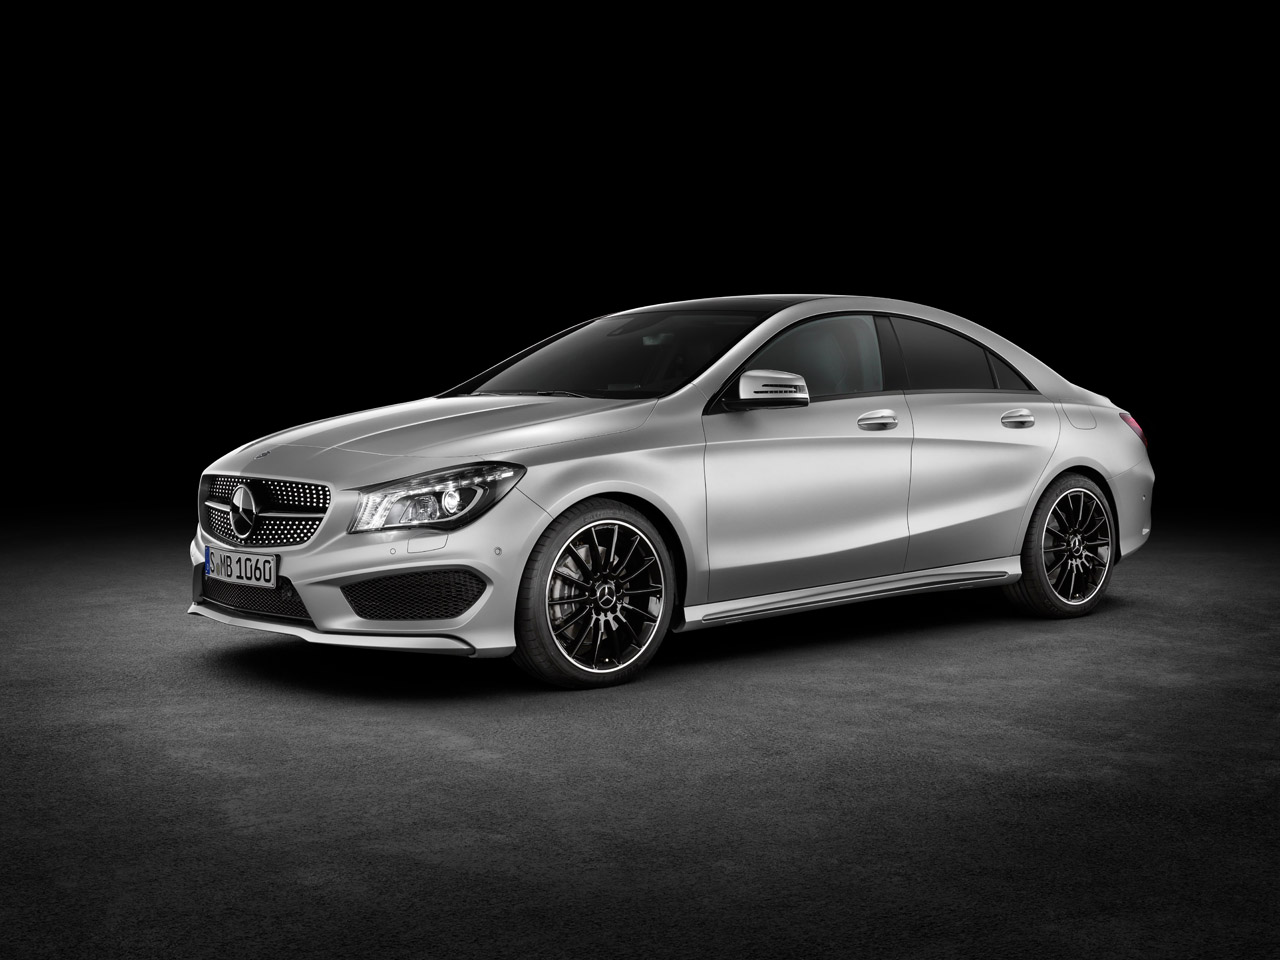 Offiicial 2014 mercedes benz cla class revealed for The latest mercedes benz